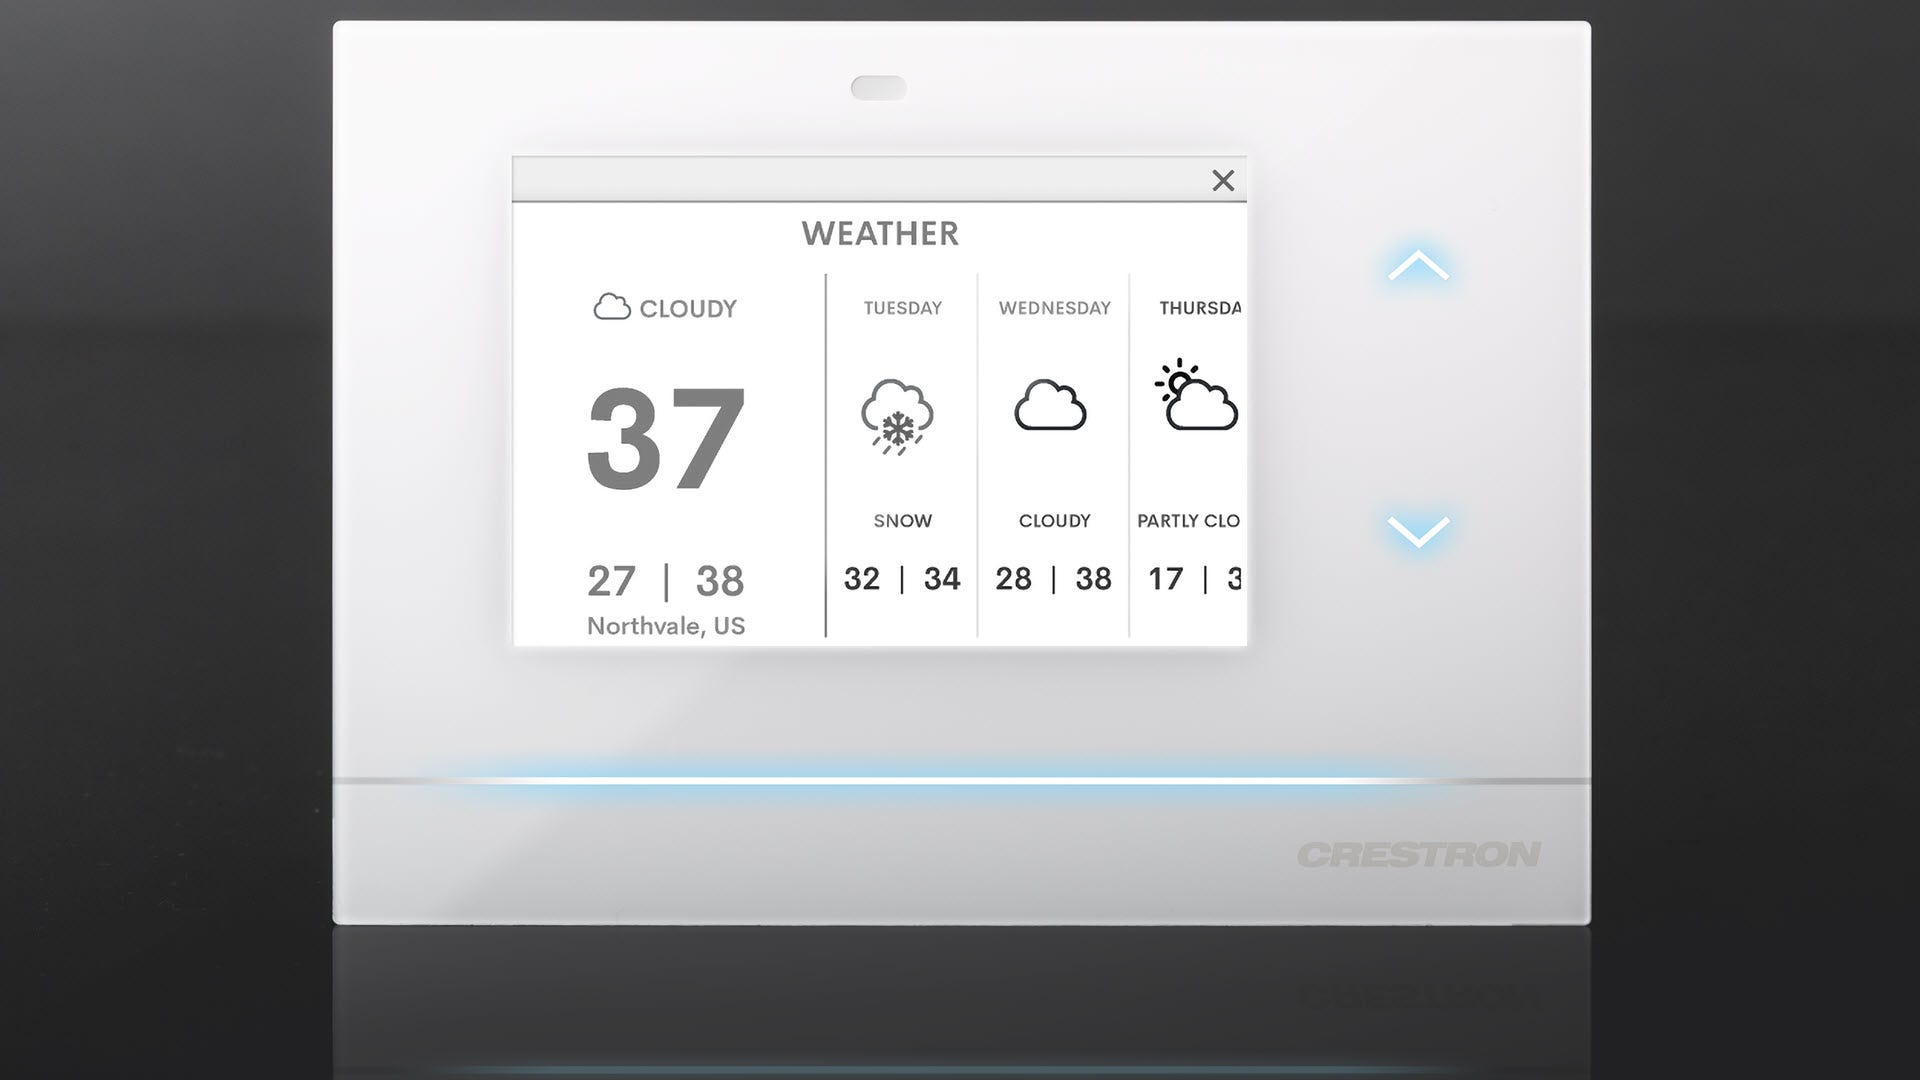 A Crestron thermostat showing the upcoming weather